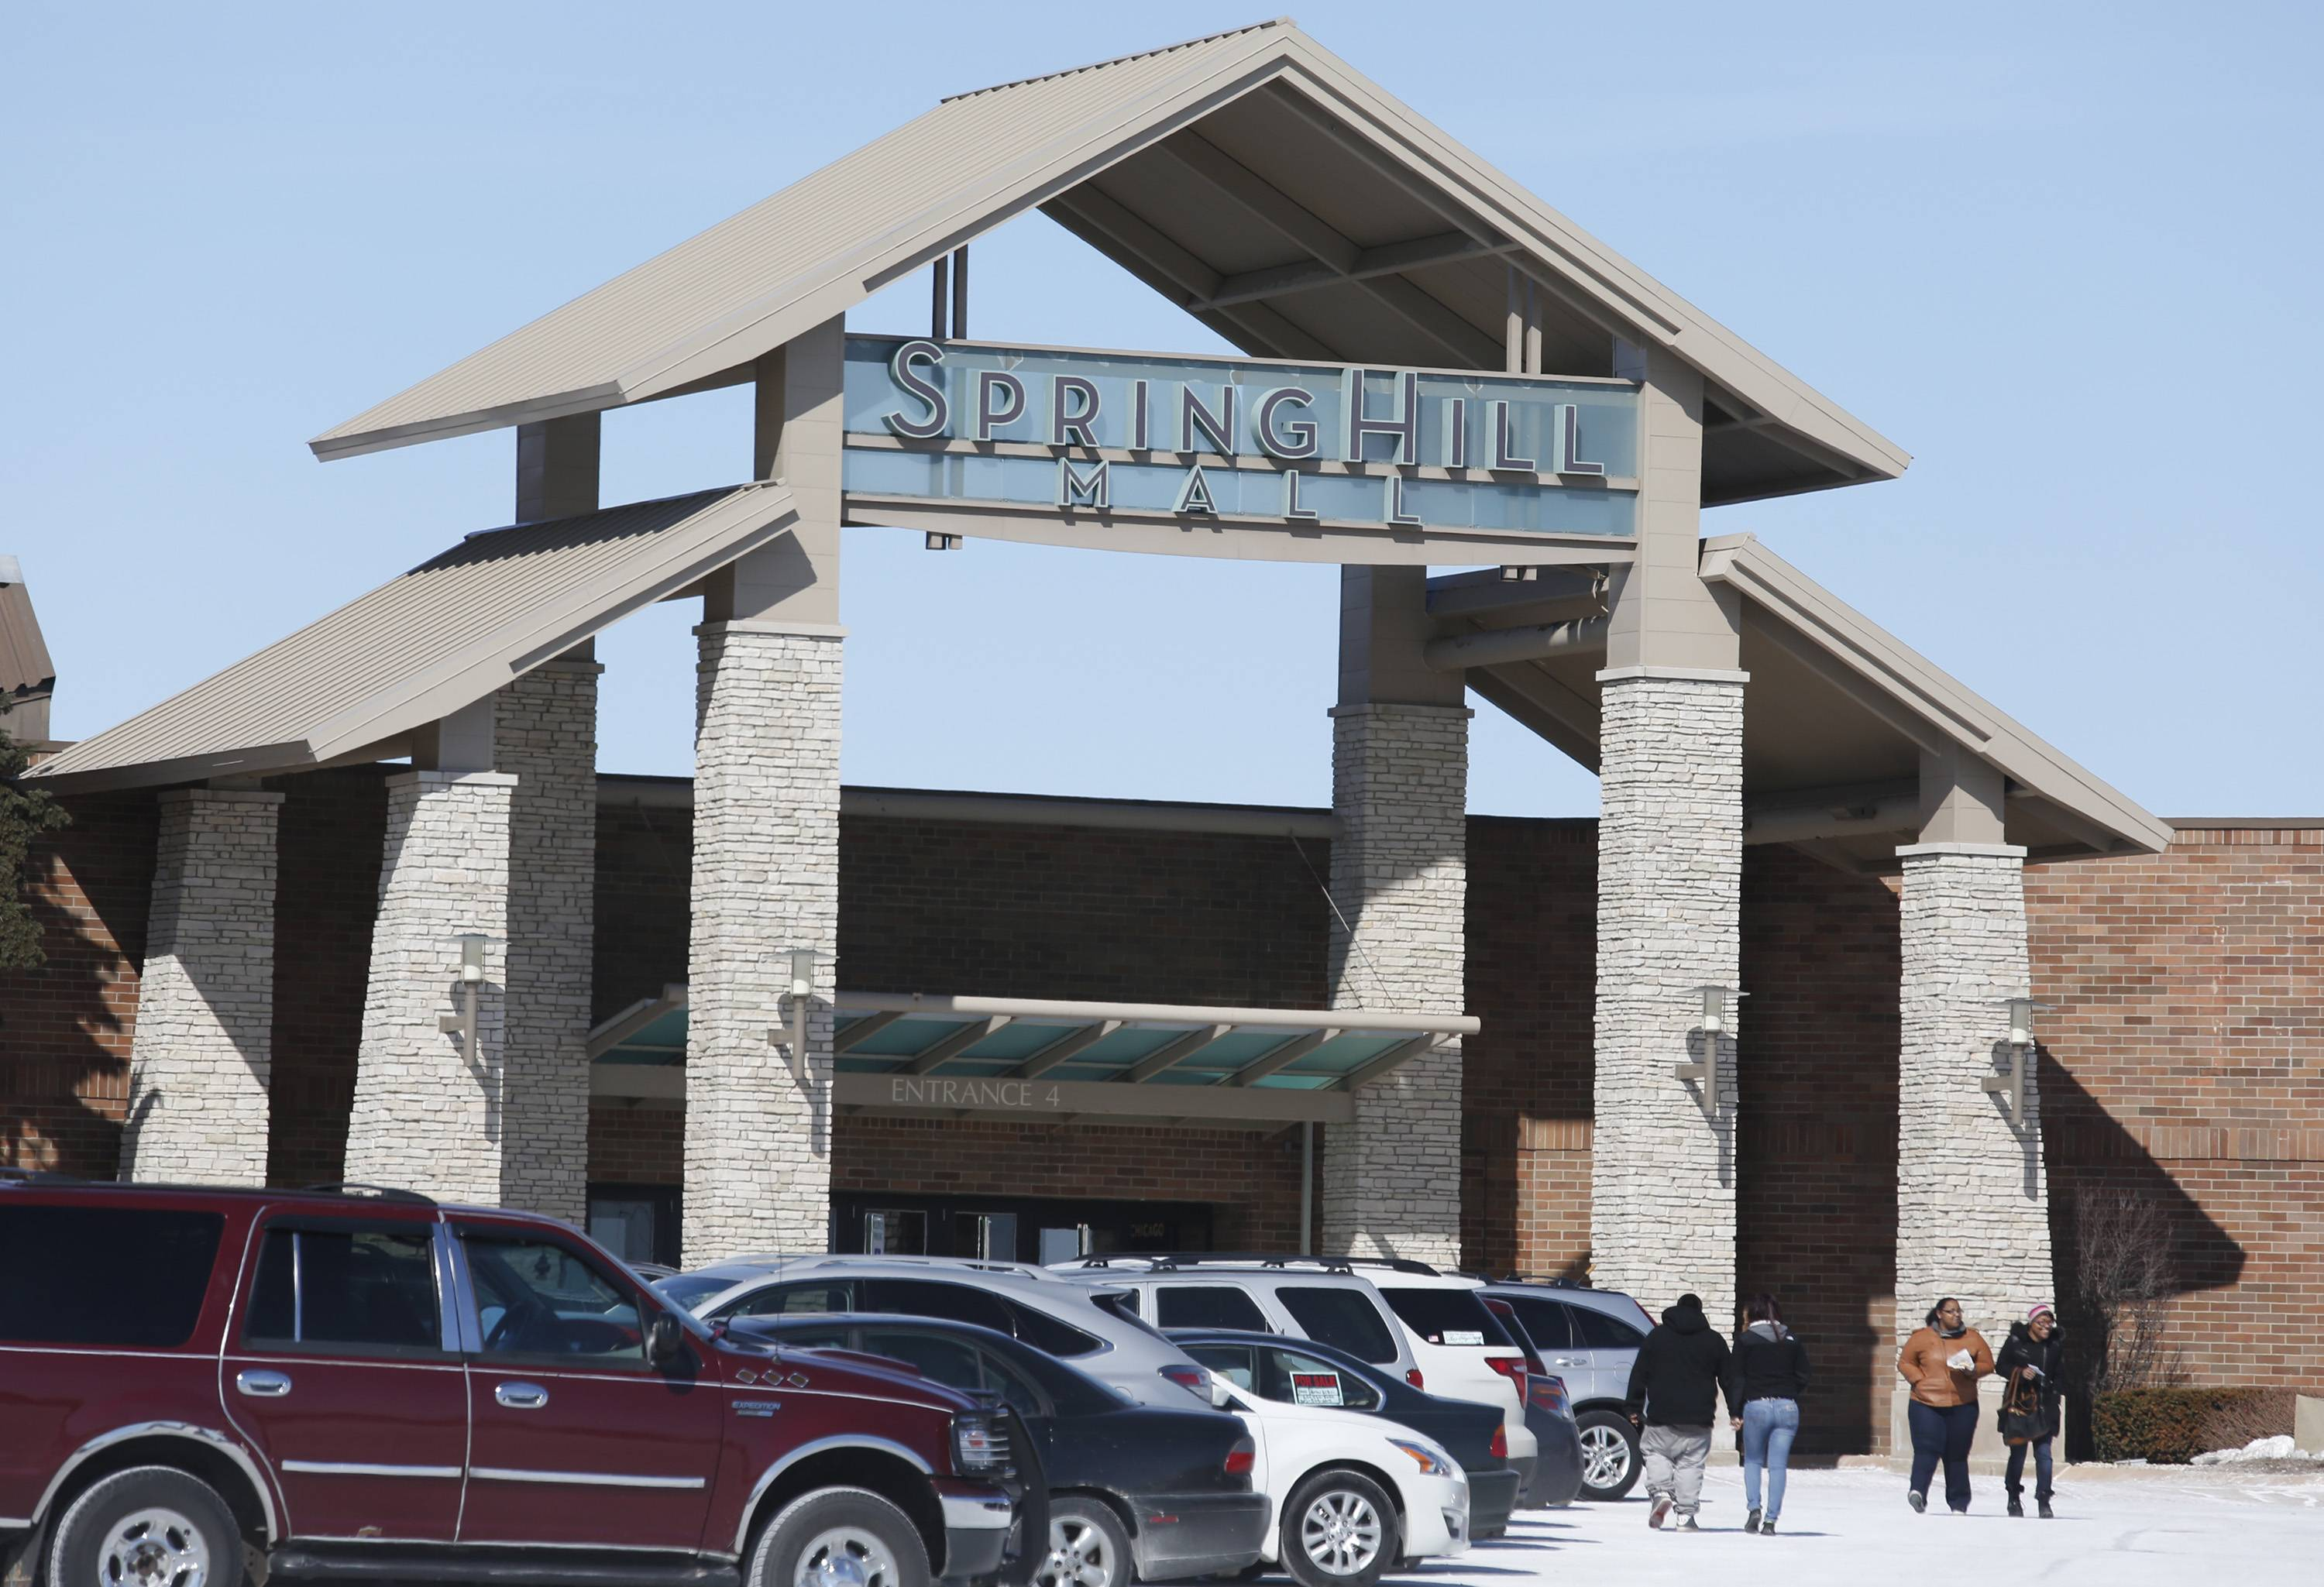 West Dundee has hired a lobbyist to secure state funds for a renovation project at Spring Hill Mall.